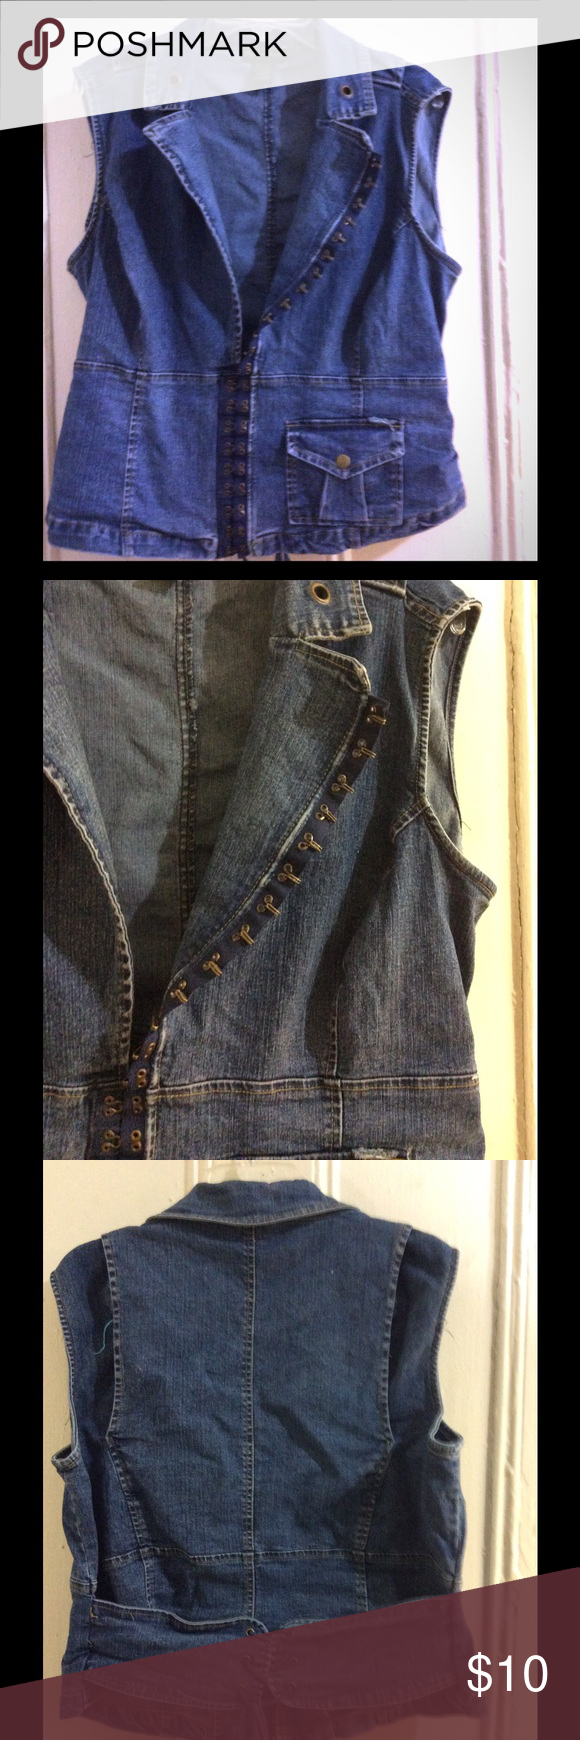 """Denim corset vest Mid wash denim with a few destroyed details. Hook and eye fastening in front, laces up in back to show off your waist. Front pocket holds lip gloss or cash. Size 16W. Princess seams, 22"""" armpit to armpit, 19"""" at high waist, 20"""" across bottom, double to see if it fits your measurements. Ashley Stewart Jackets & Coats Vests"""